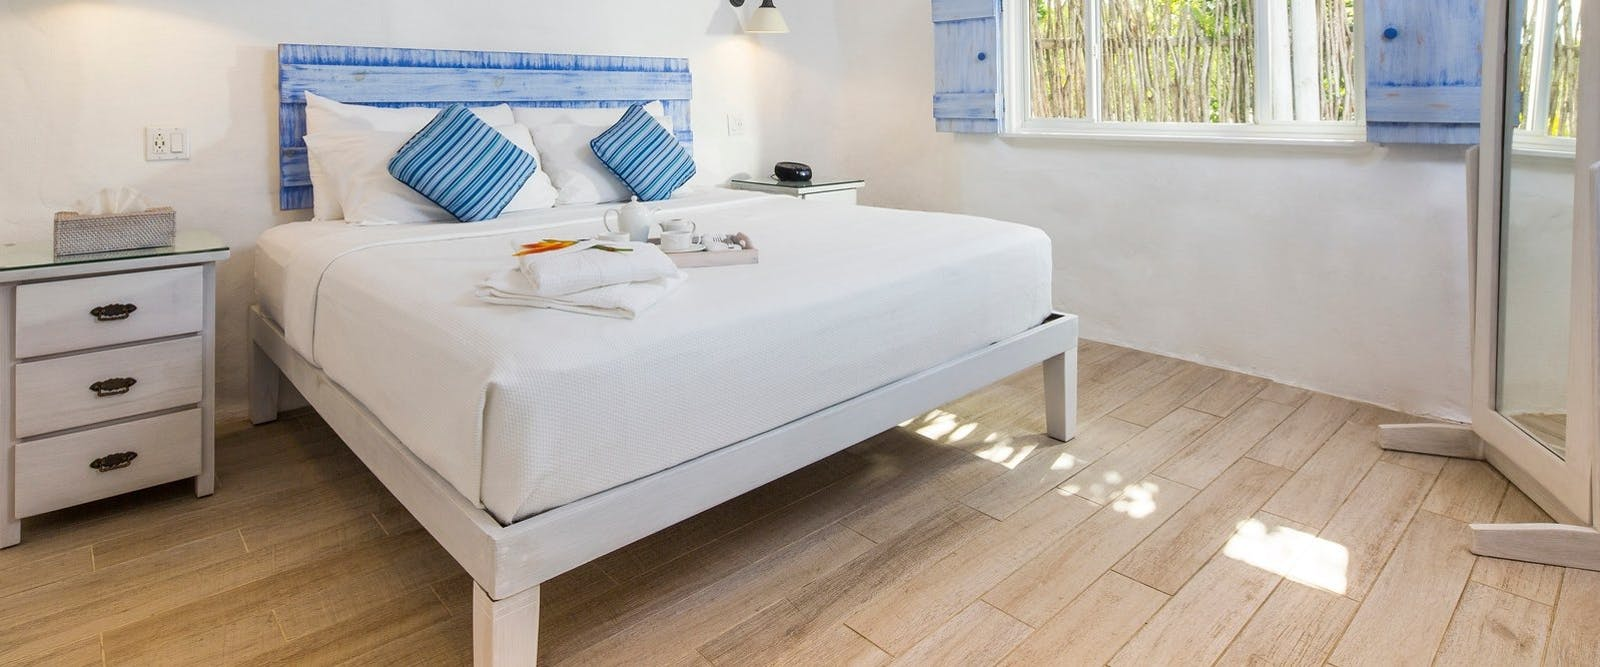 Gauguin Suite Bedroom at Galley Bay Resort & Spa, Antigua